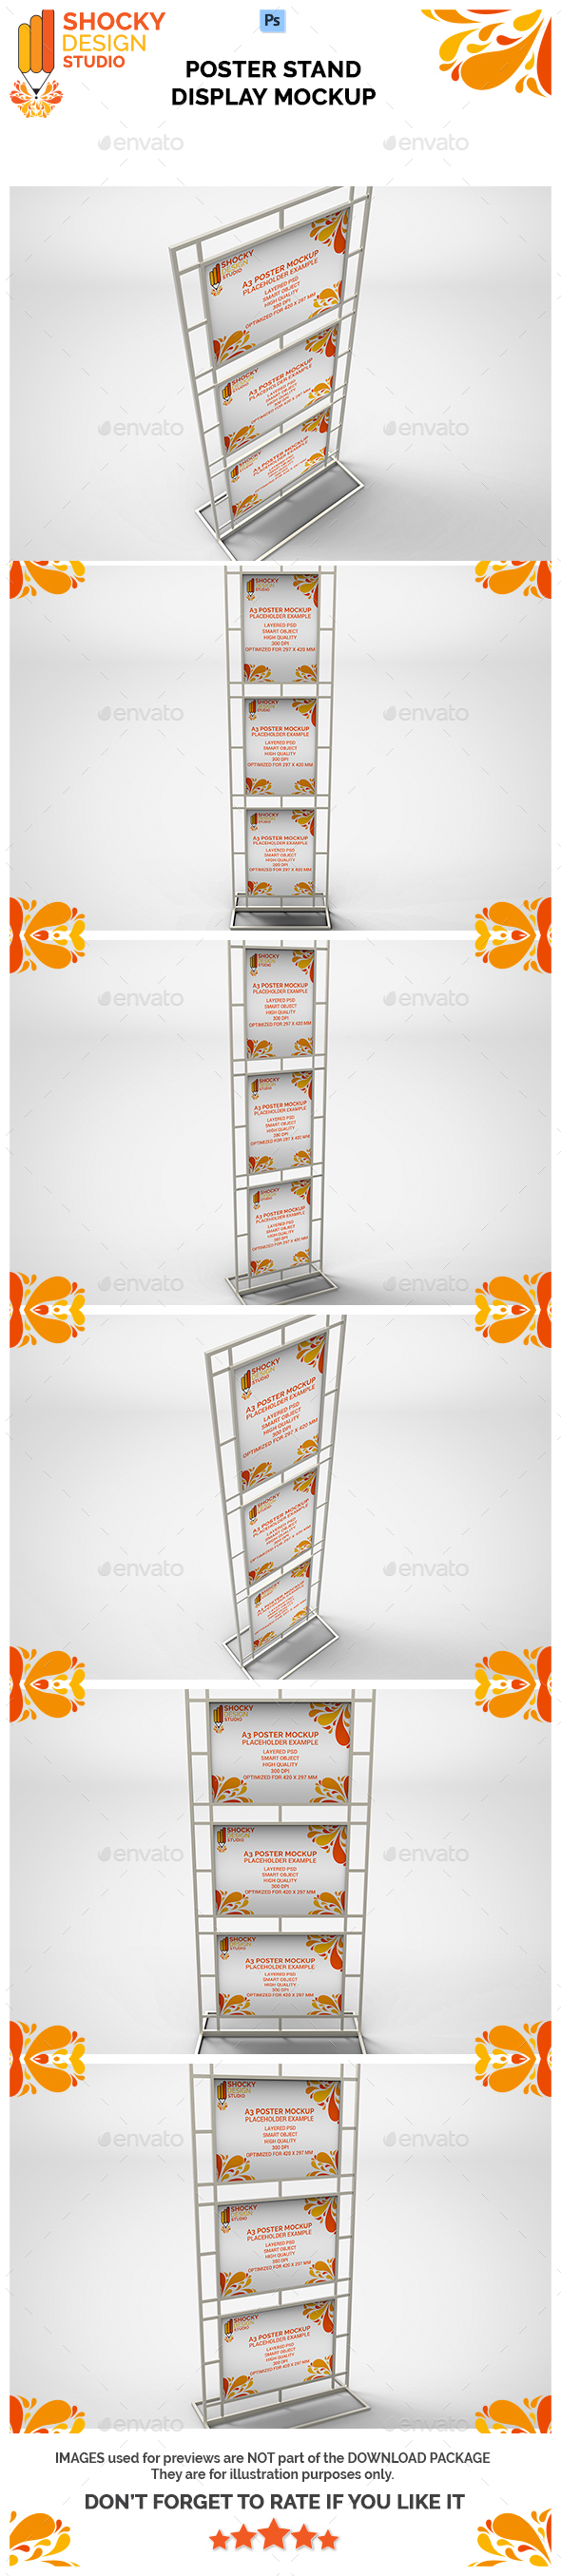 Poster Stand Display Mockup - Posters Print